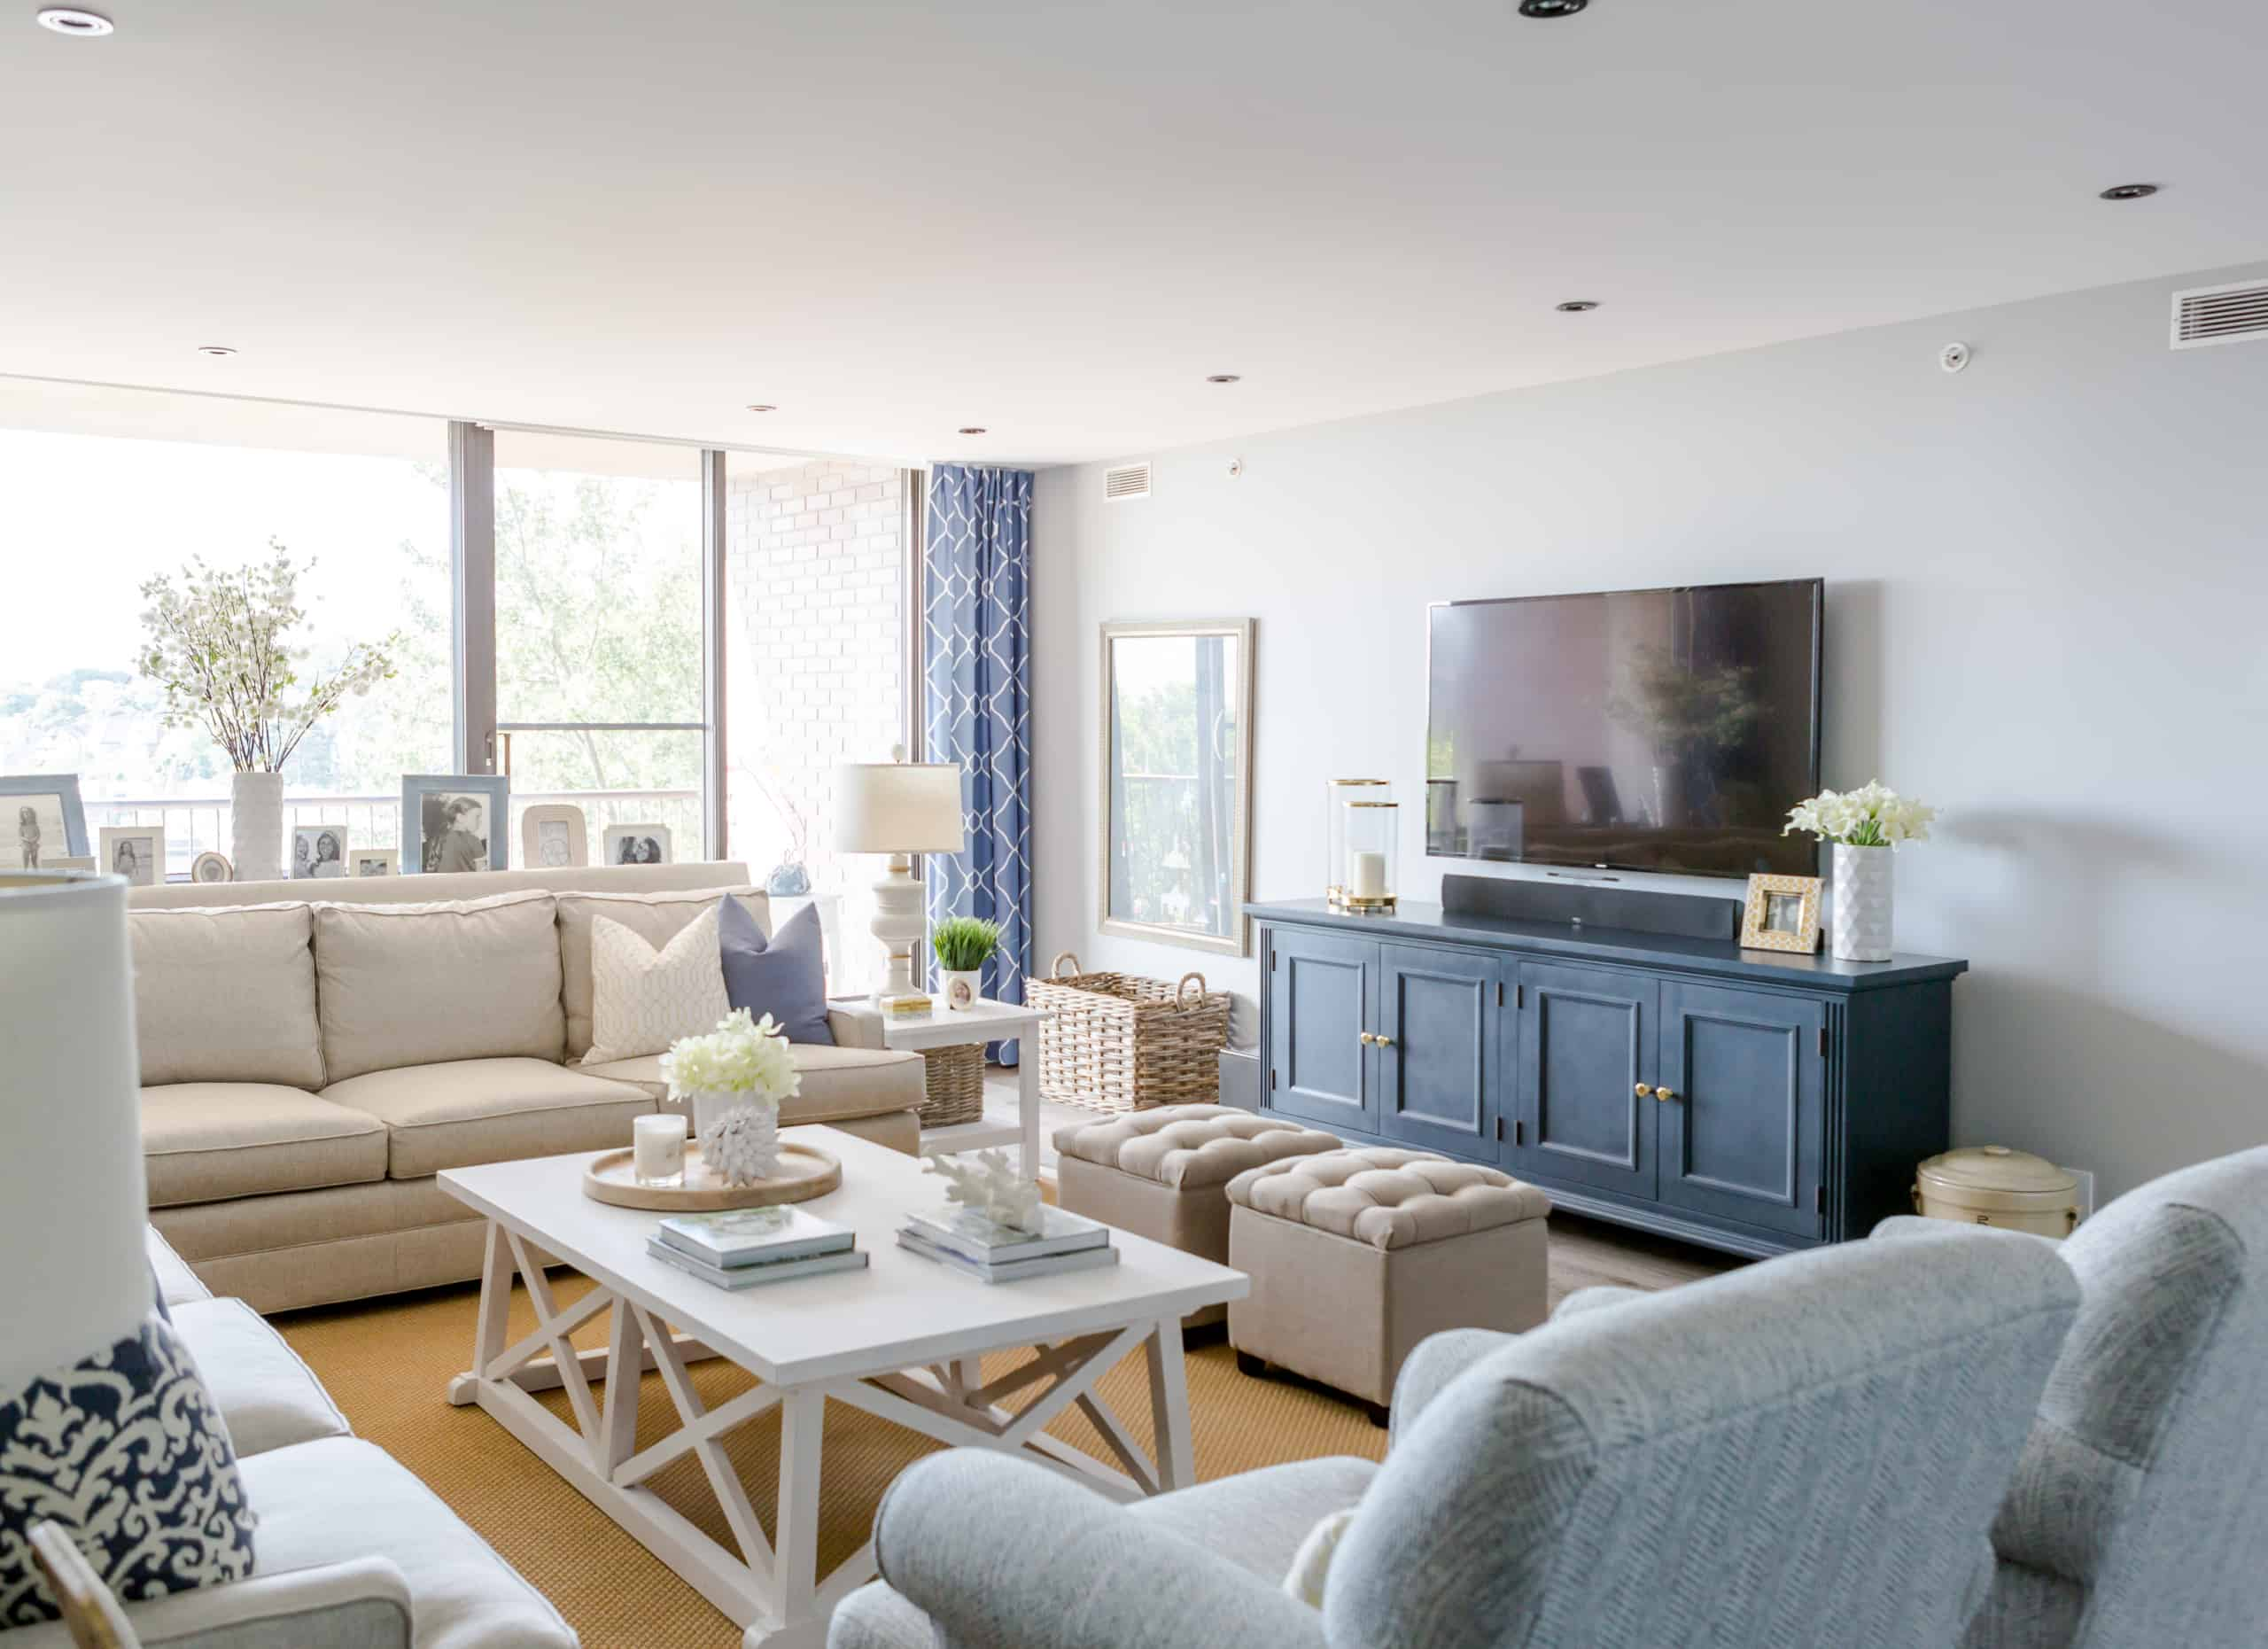 Large living room containing a pleasant amount blue